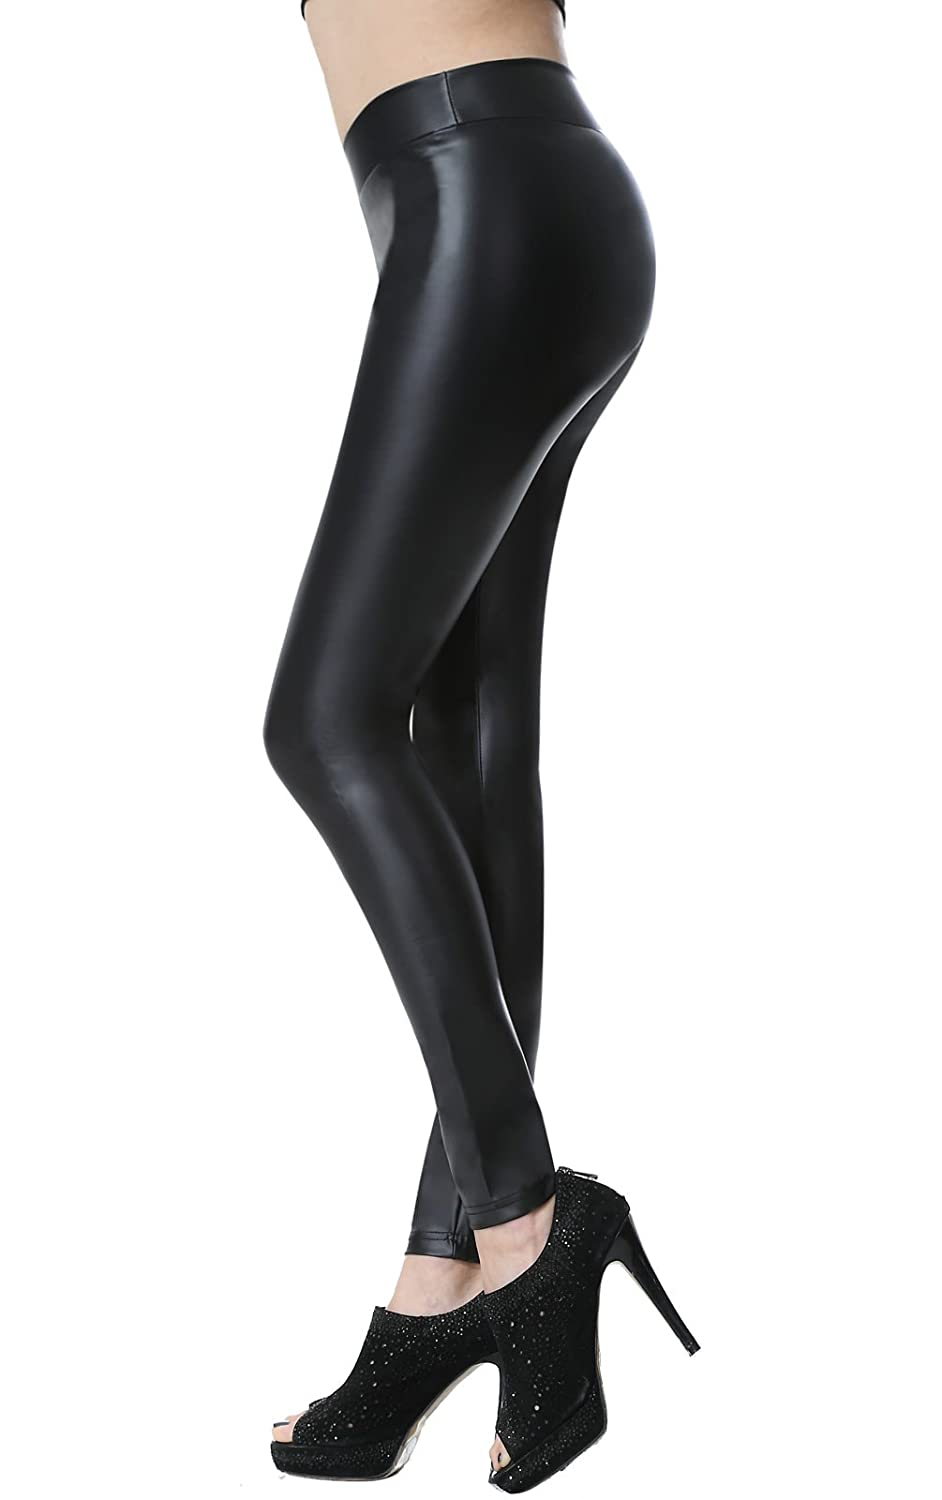 8c10fe4dbdc24 Material: High quality stretchy synthetic leggings (85% Polyester + 5%  Spandex + 10% PU). Features: Medium tight waist, wrinkle-resistant, stretchy,  soft, ...